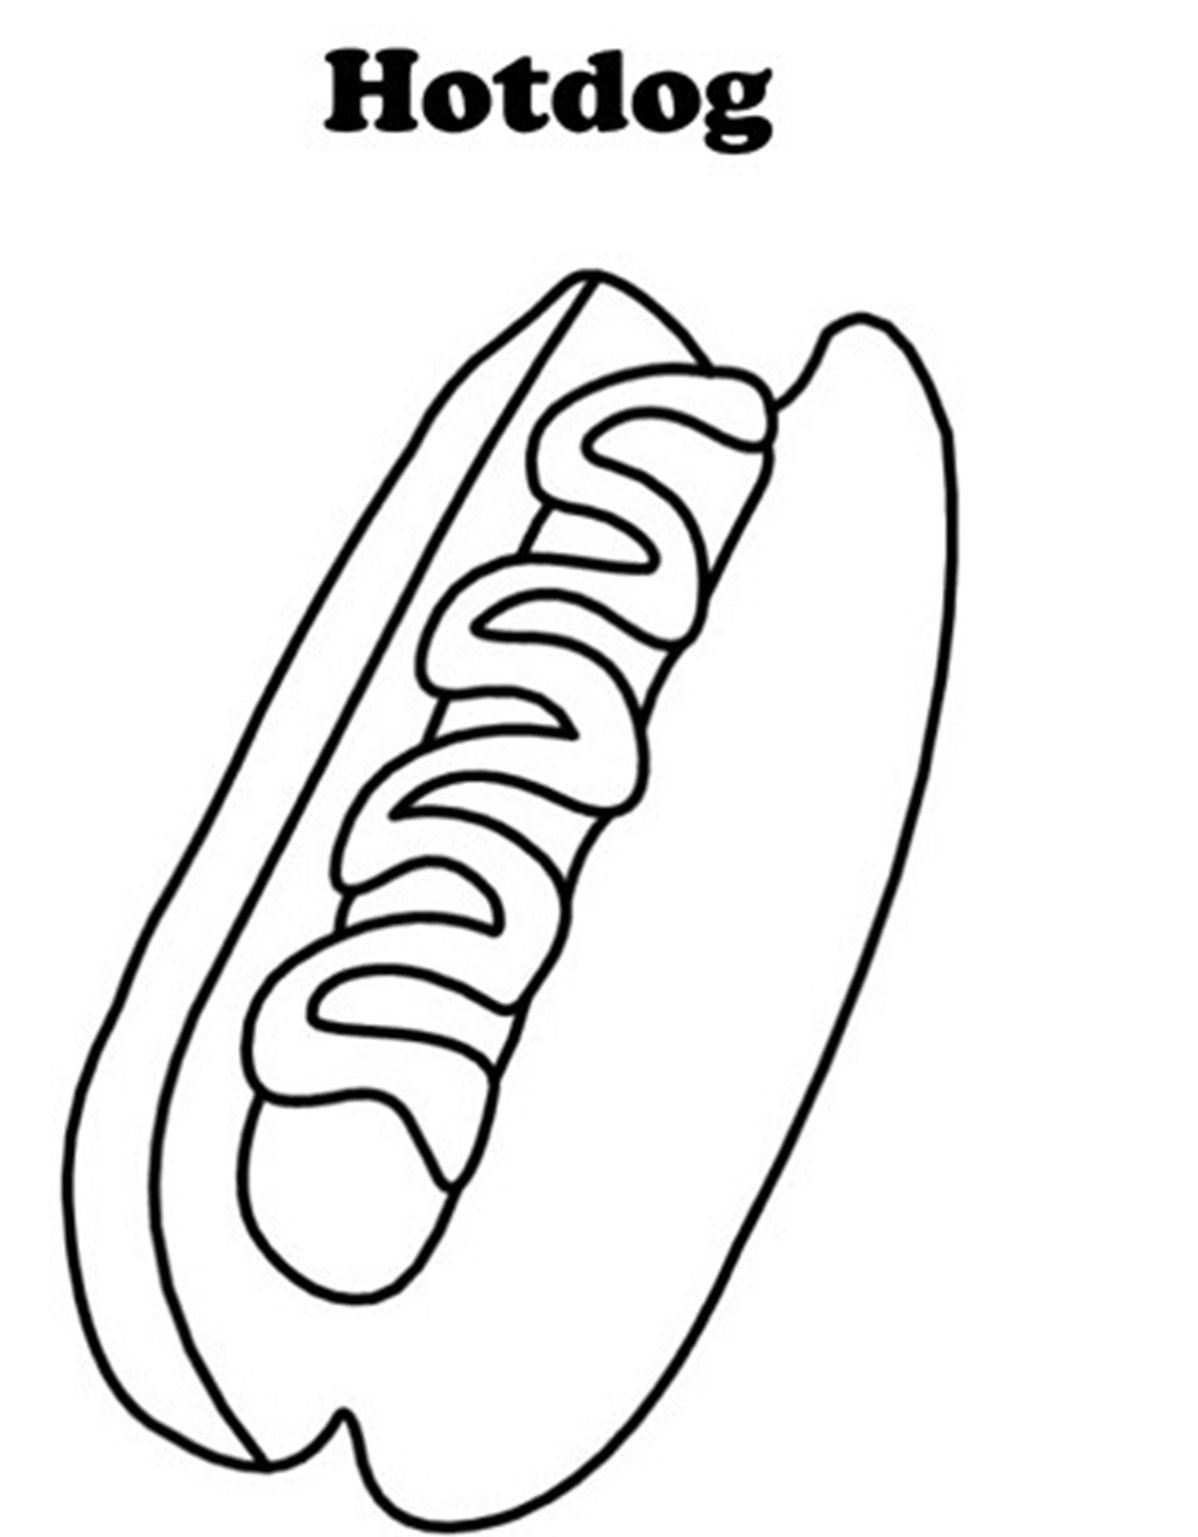 Hotdog Coloring Pages : hotdog, coloring, pages, Hotdog, Coloring, Pages, 72544, Uncategorized, Page,, Pages,, Inspirational